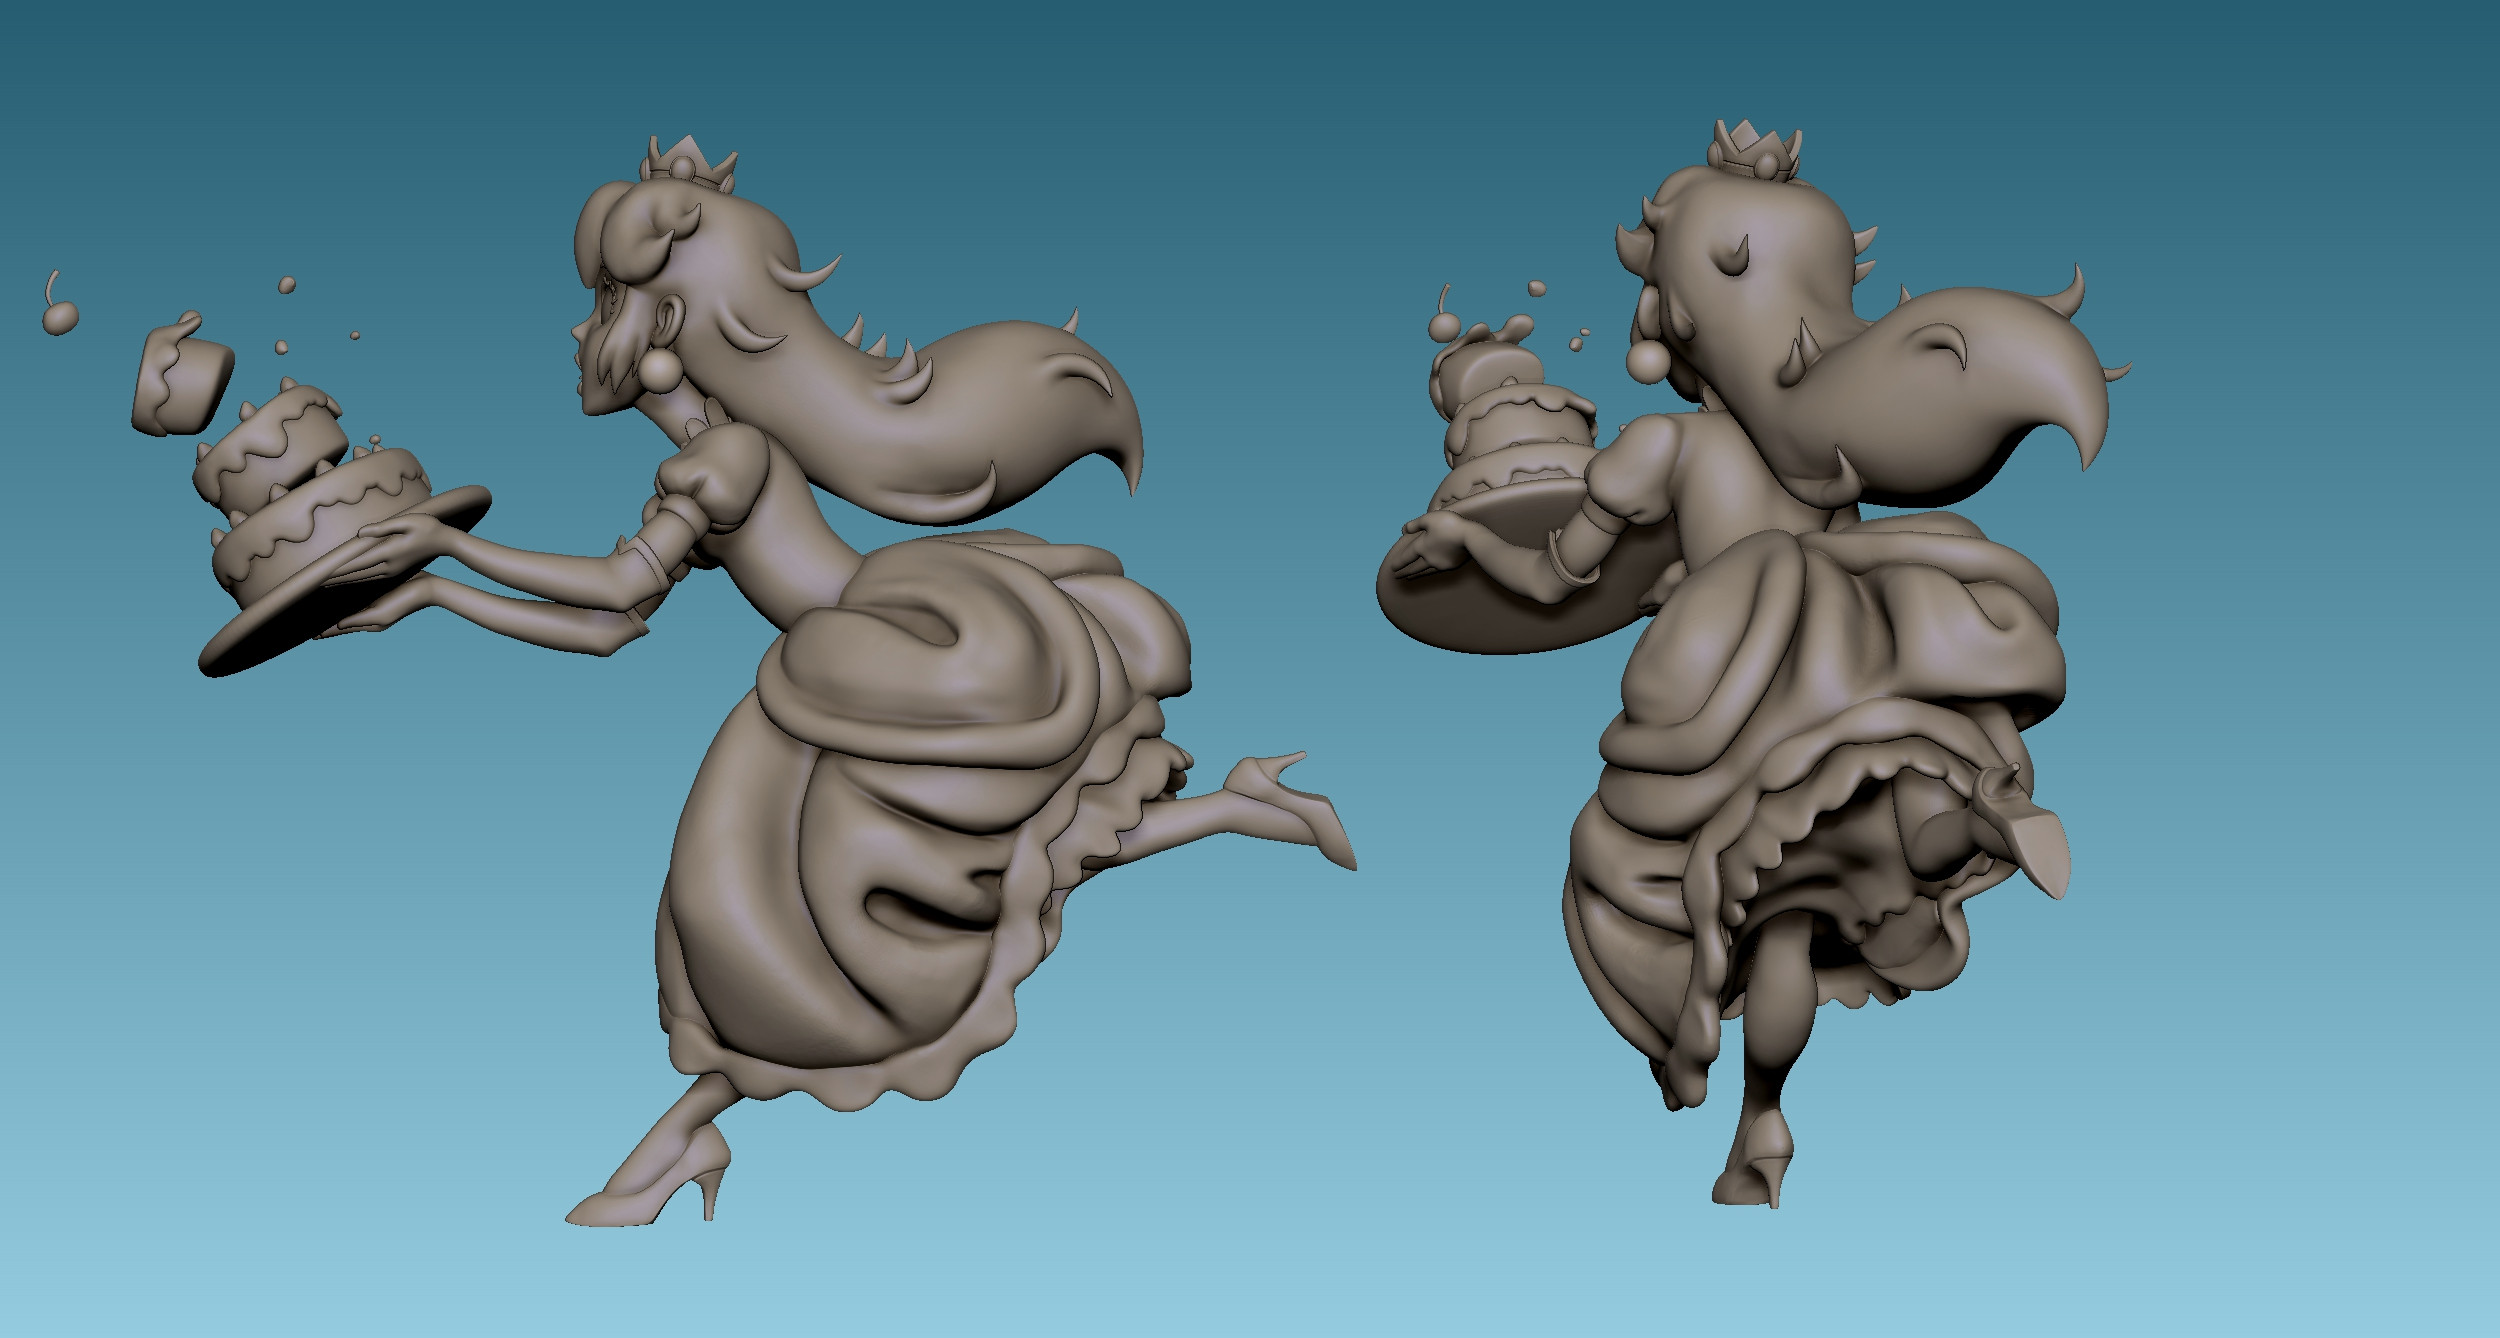 Renders from Zbrush